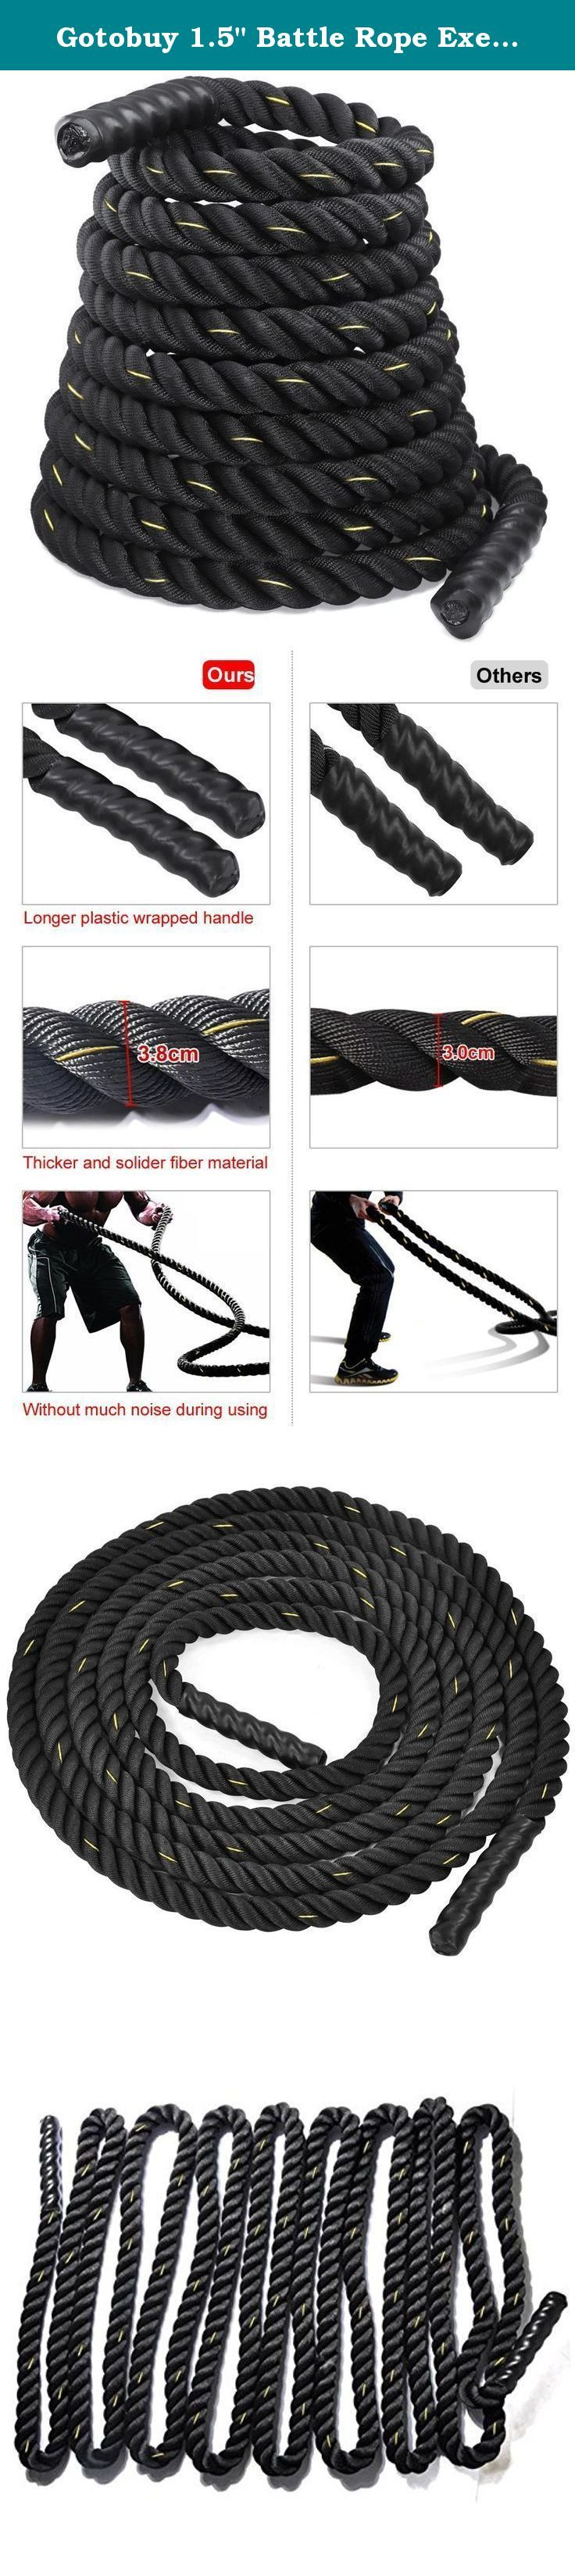 "Gotobuy 1.5"" Battle Rope Exercise Workout Strength Training 50 ft. ● Strengthen your abs, arms, shoulders, legs and get an intense conditioning workout ● It can be used indoors or outdoors ● Heat shrink caps on the ends ● High tensile strength ● Build stamina ● Increase VO2 levels ● Improve cardiovascular health ● Gain lean muscle mass ● Burn fat ● Material: rope/Polyester Dacron two ends /polyethylene contracted pipe ● 1.5"" Diameter Packing List: ● 1 x Poly Dacron Fitness Rope."